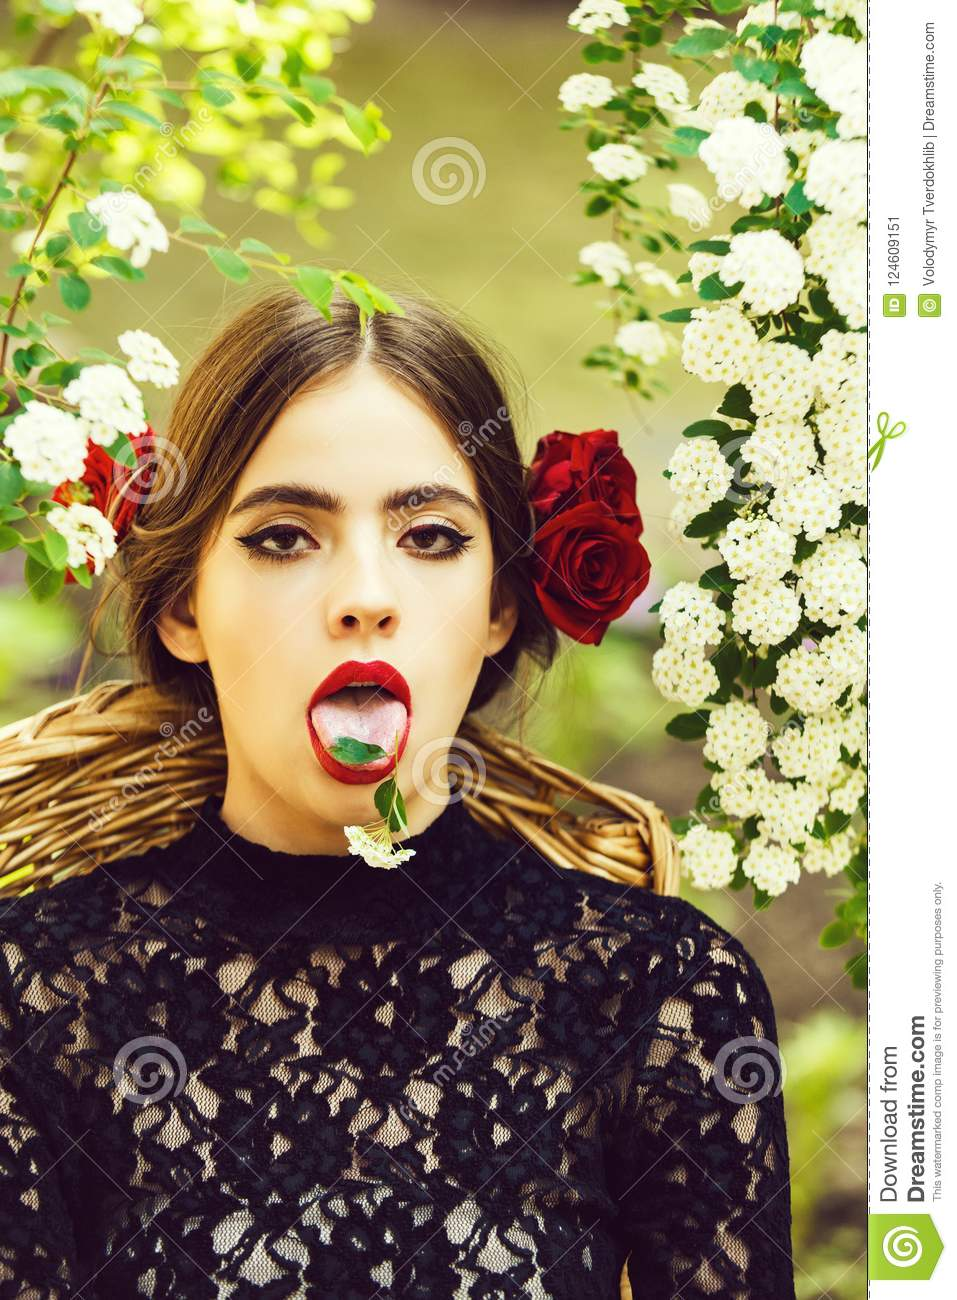 Cute woman with white flower on tongue in open mouth